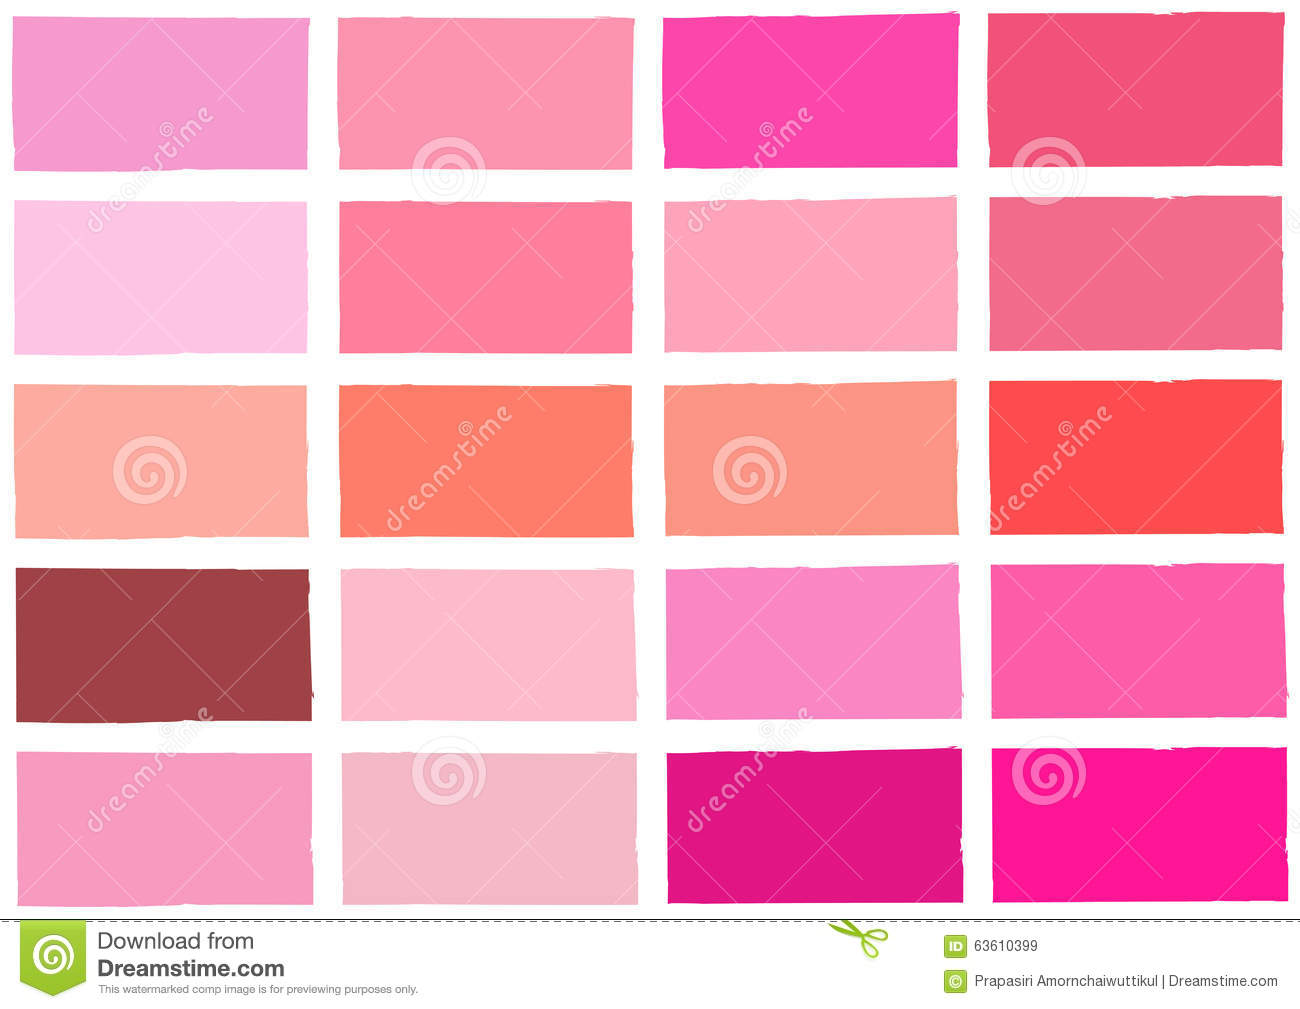 Wandfarbe Hellrosa Pink Tone Color Shade Background Stock Vector Image